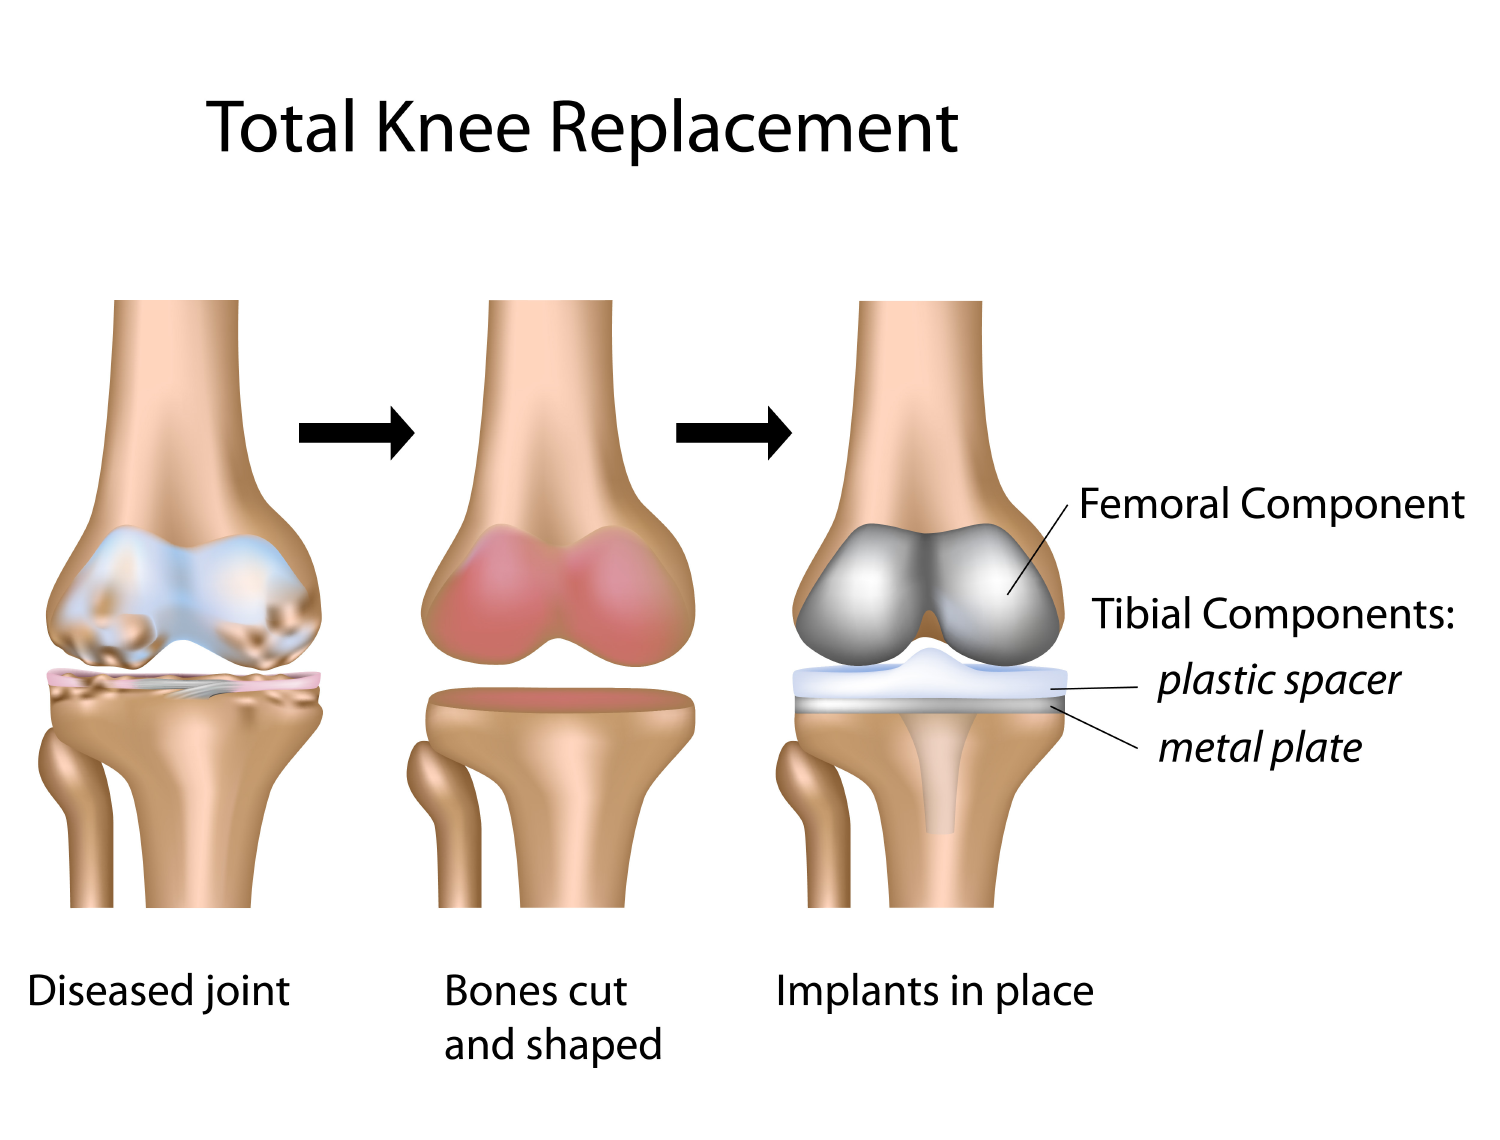 Painful knee replacement (revision procedures)